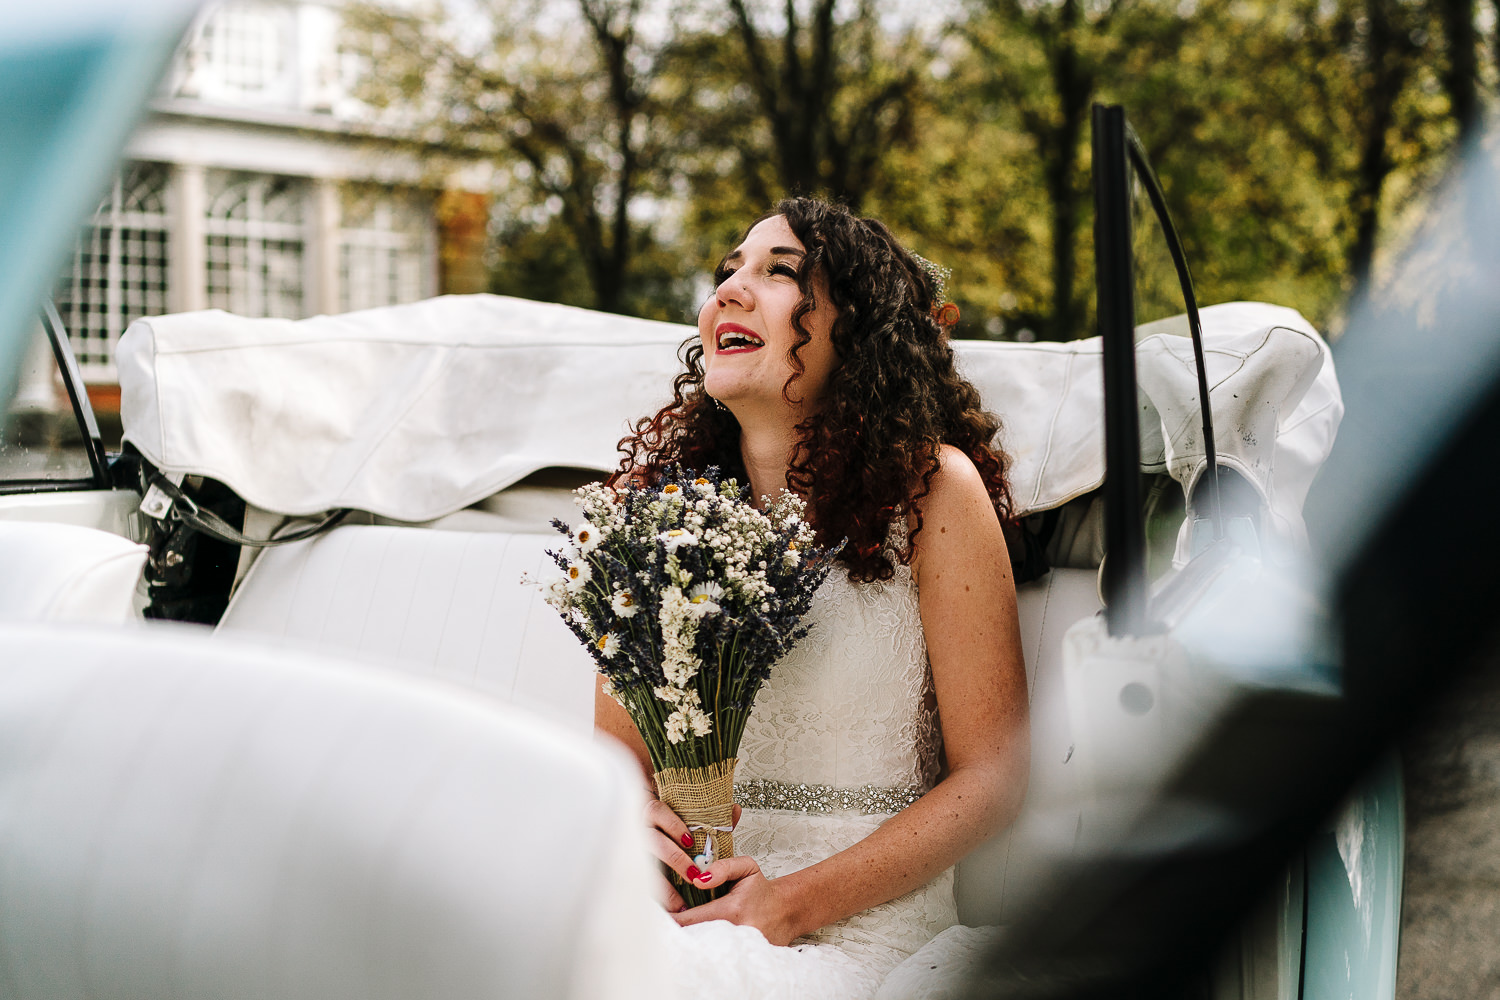 bride smiling in the car before getting married